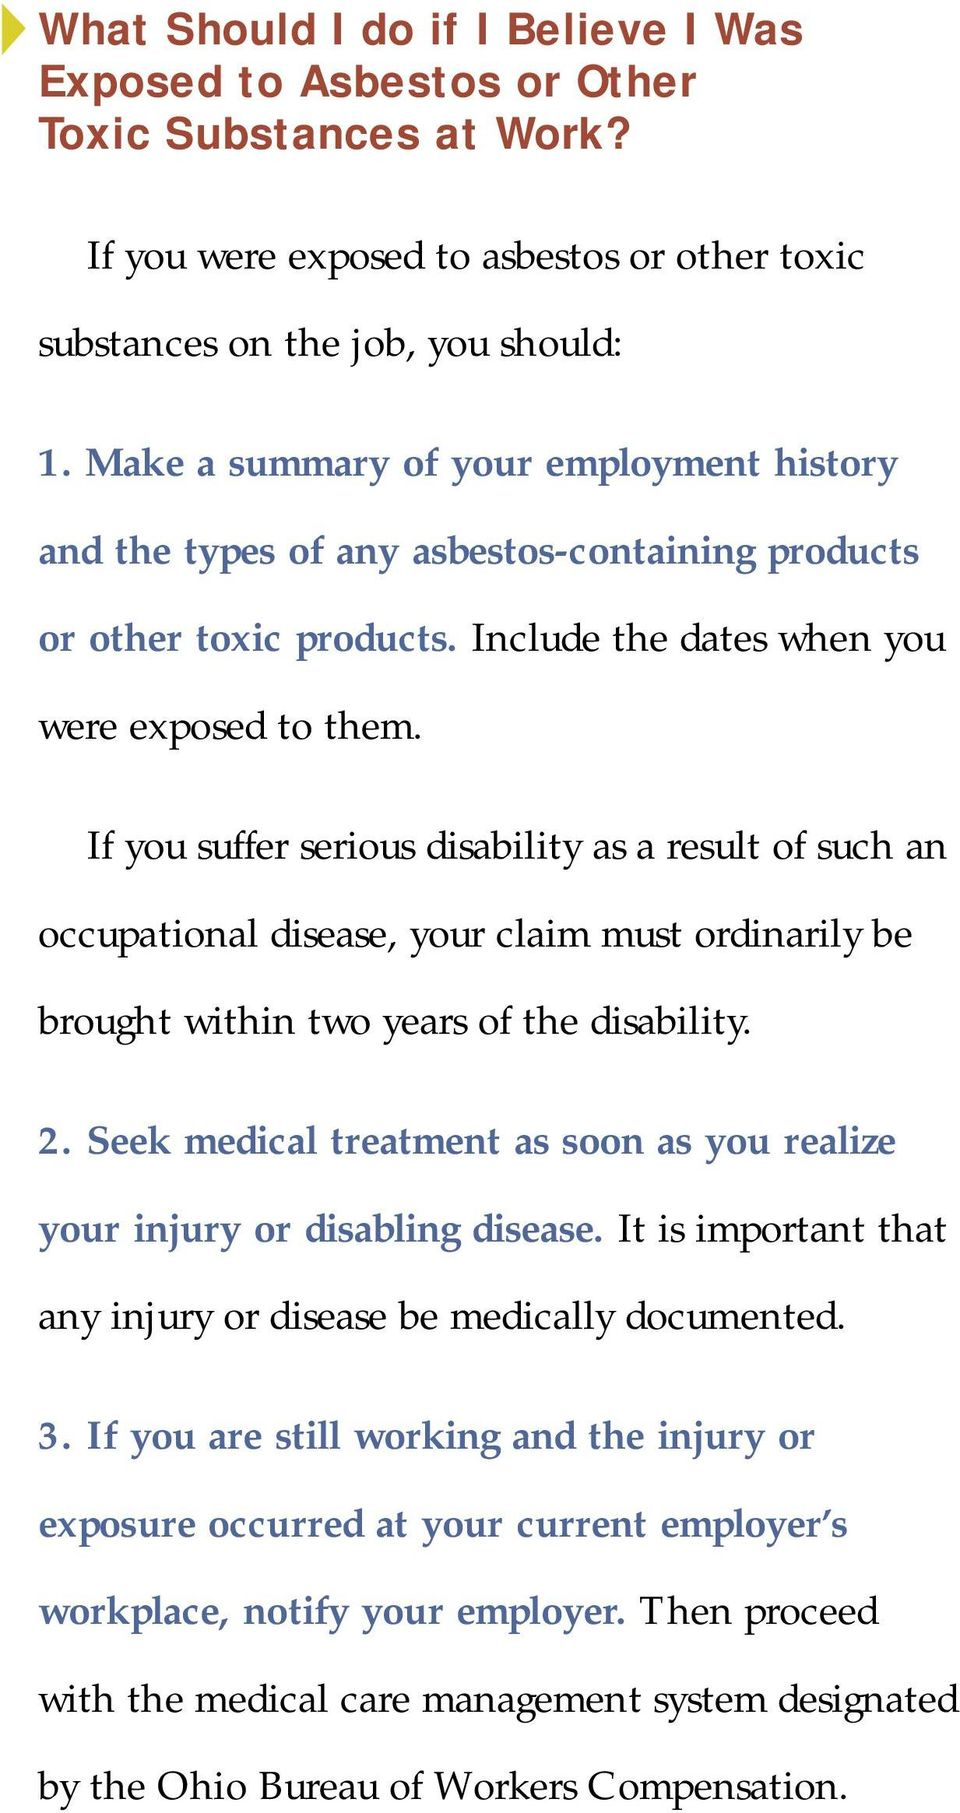 If you suffer serious disability as a result of such an occupational disease, your claim must ordinarily be brought within two years of the disability. 2.